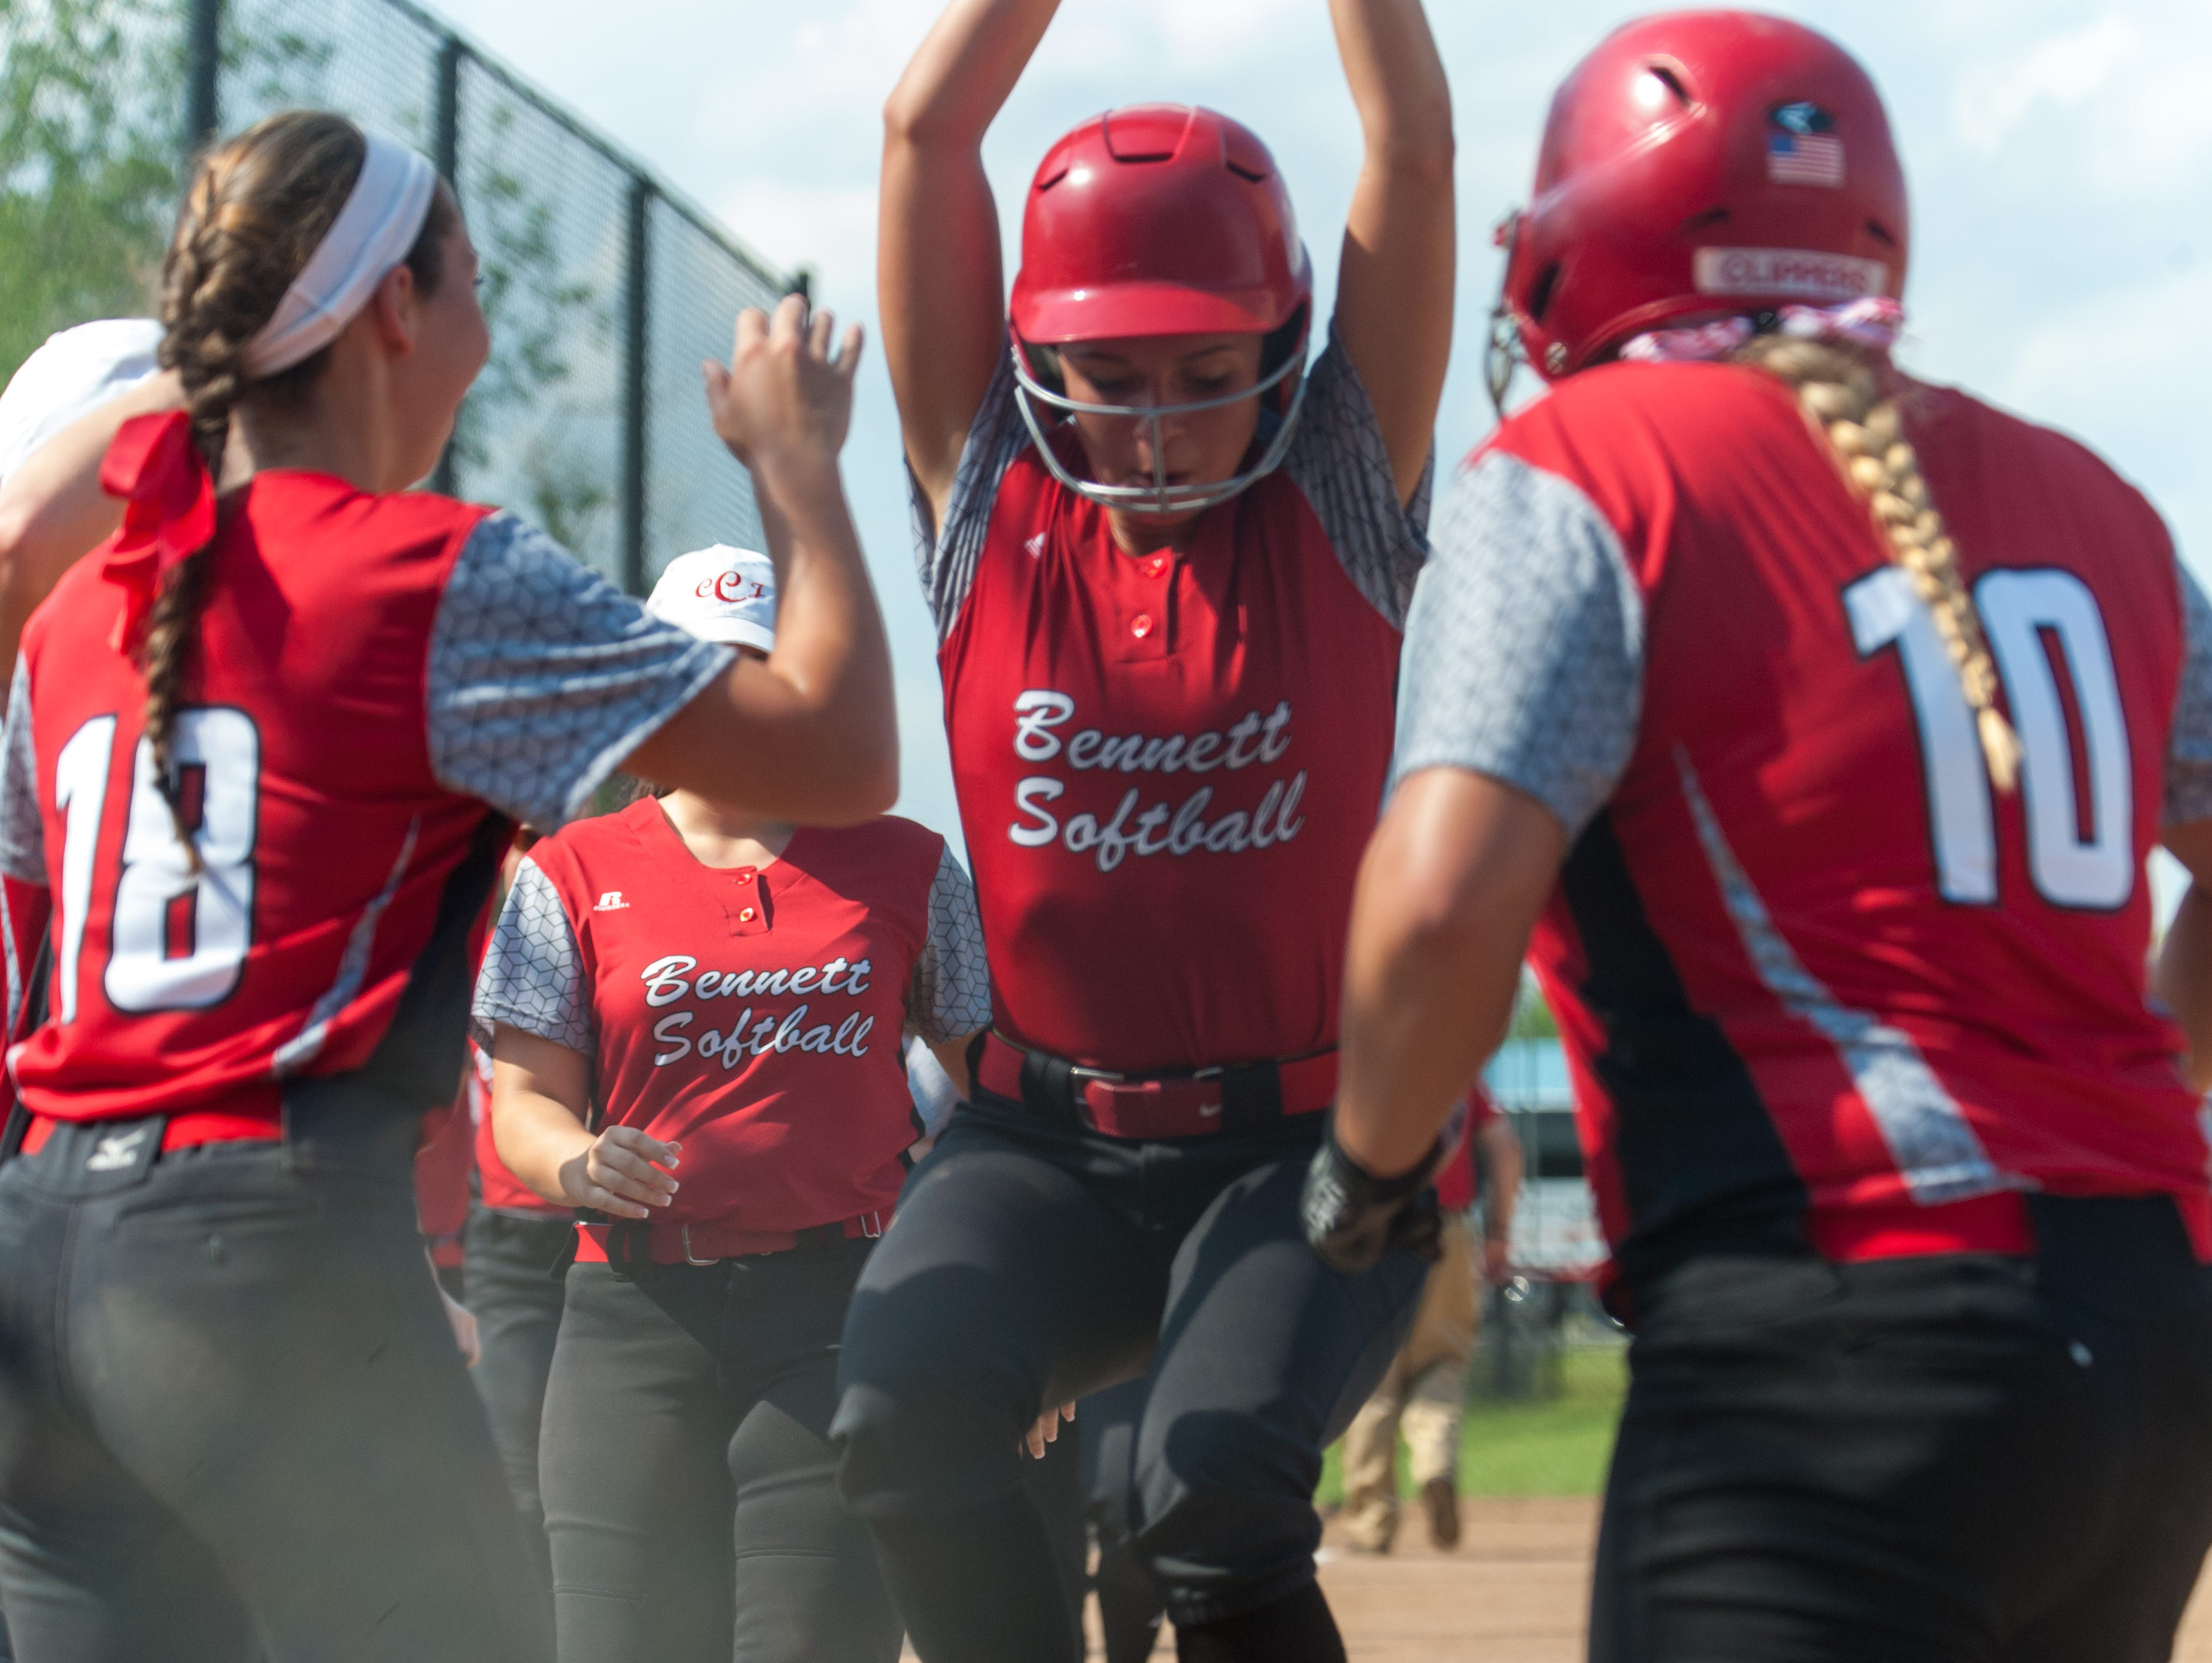 Bennett pitcher Kasey Donalds (7) is engulfed in Clippers after hitting a game-opening home run against Huntingtown in the MPSSAA playoffs on Tuesday afternoon.